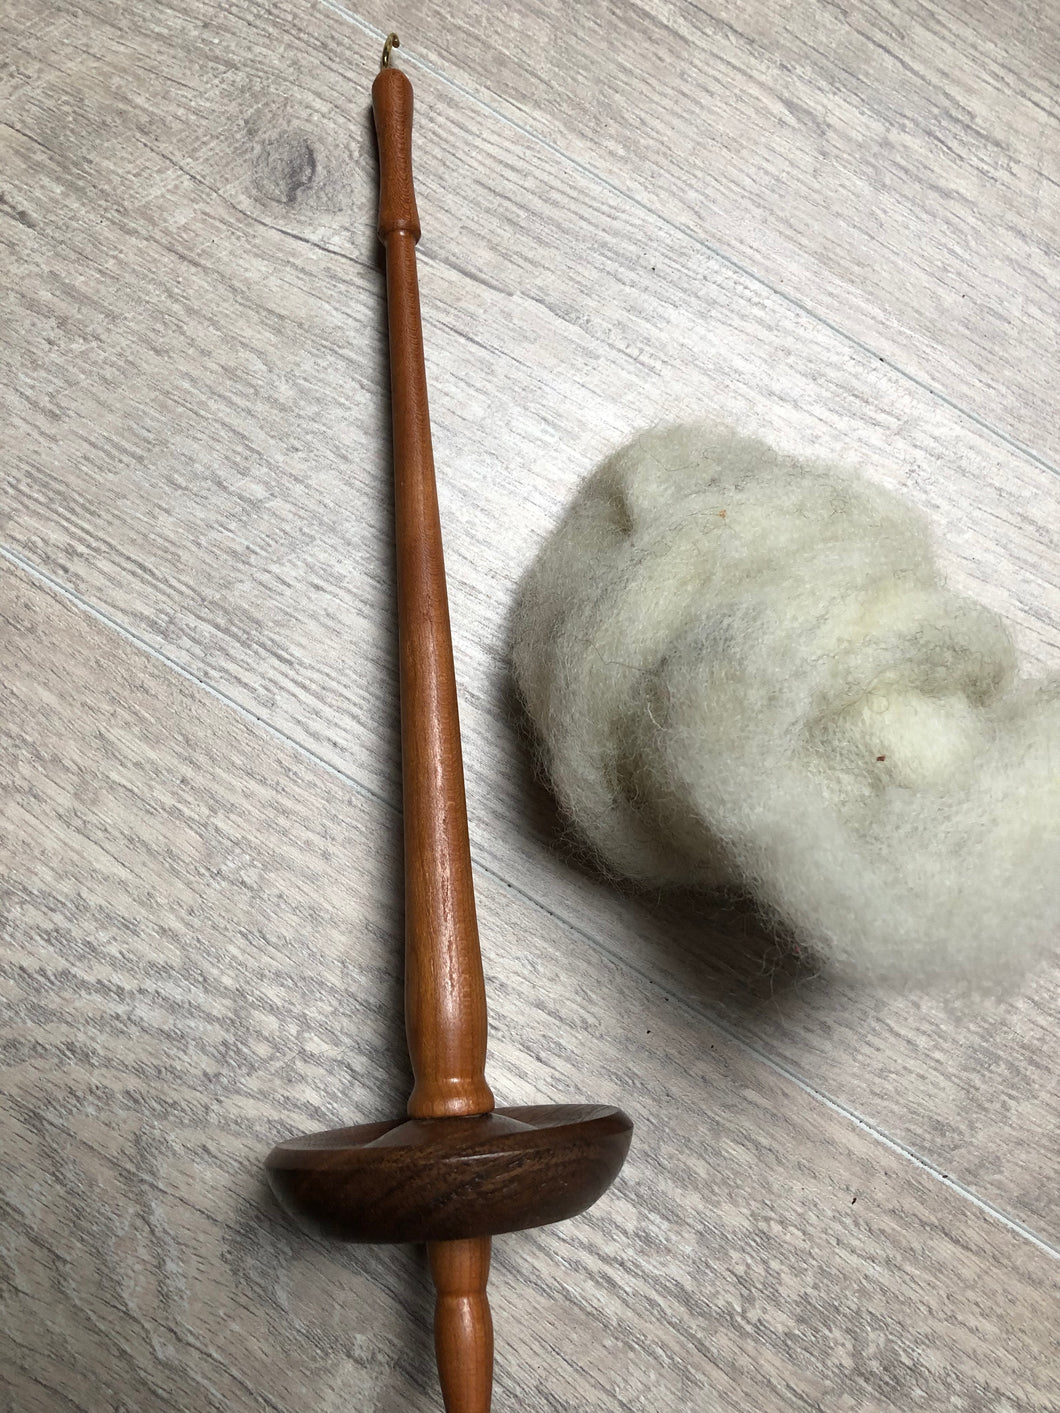 Cherry and Walnut Hand Turned Drop Spindle